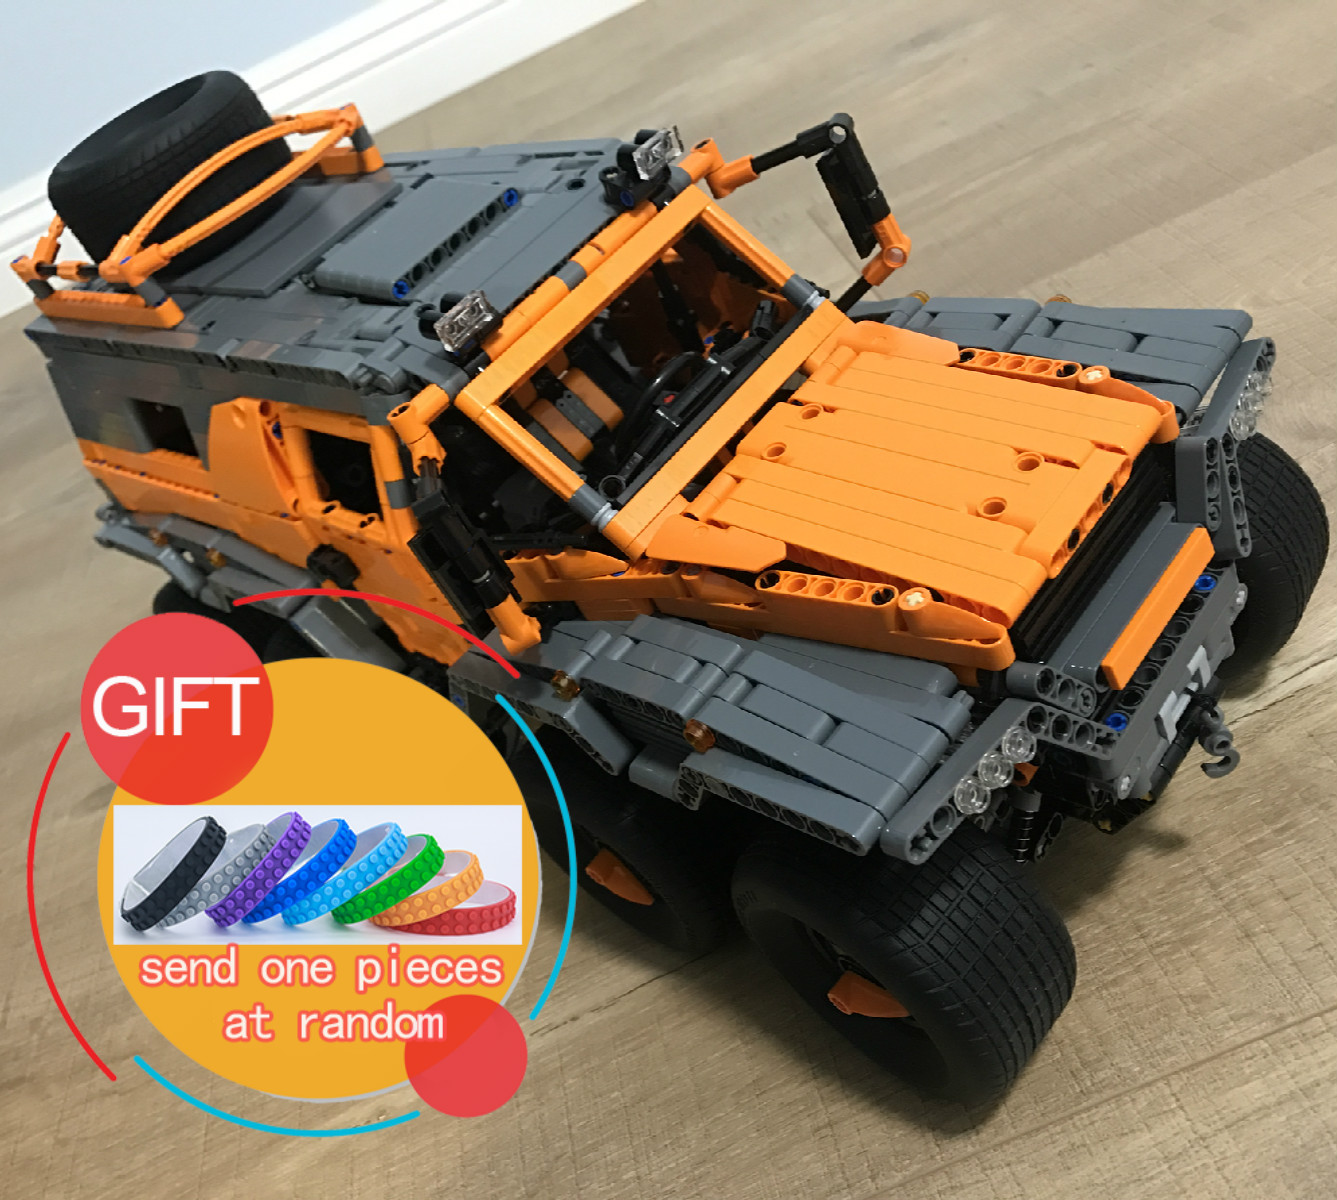 23011B 2816pcs Technical Series Off-road vehicle Model Building Kits Block Educational Bricks Compatible 5360 Toys Gift lepin new lepin 22001 pirate ship imperial warships model building kits block briks toys gift 1717pcs